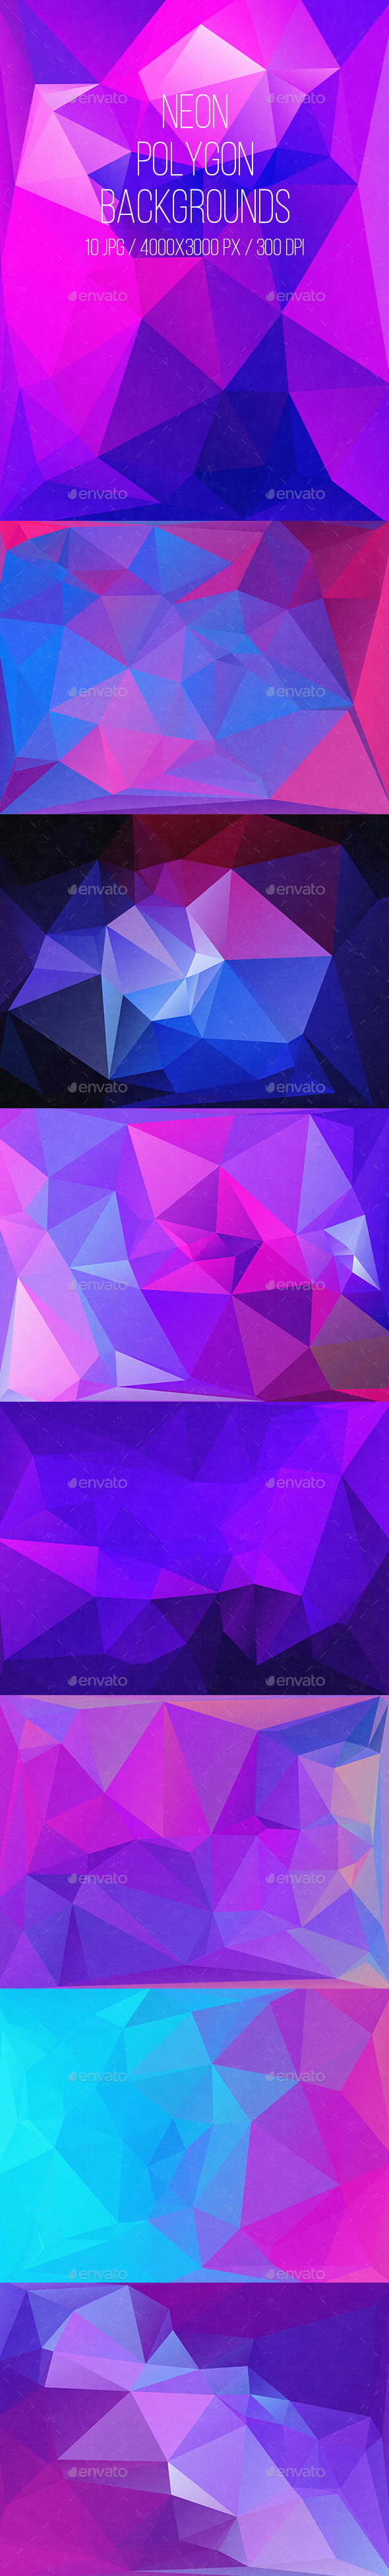 Neon Polygon Backgrounds - Abstract Backgrounds